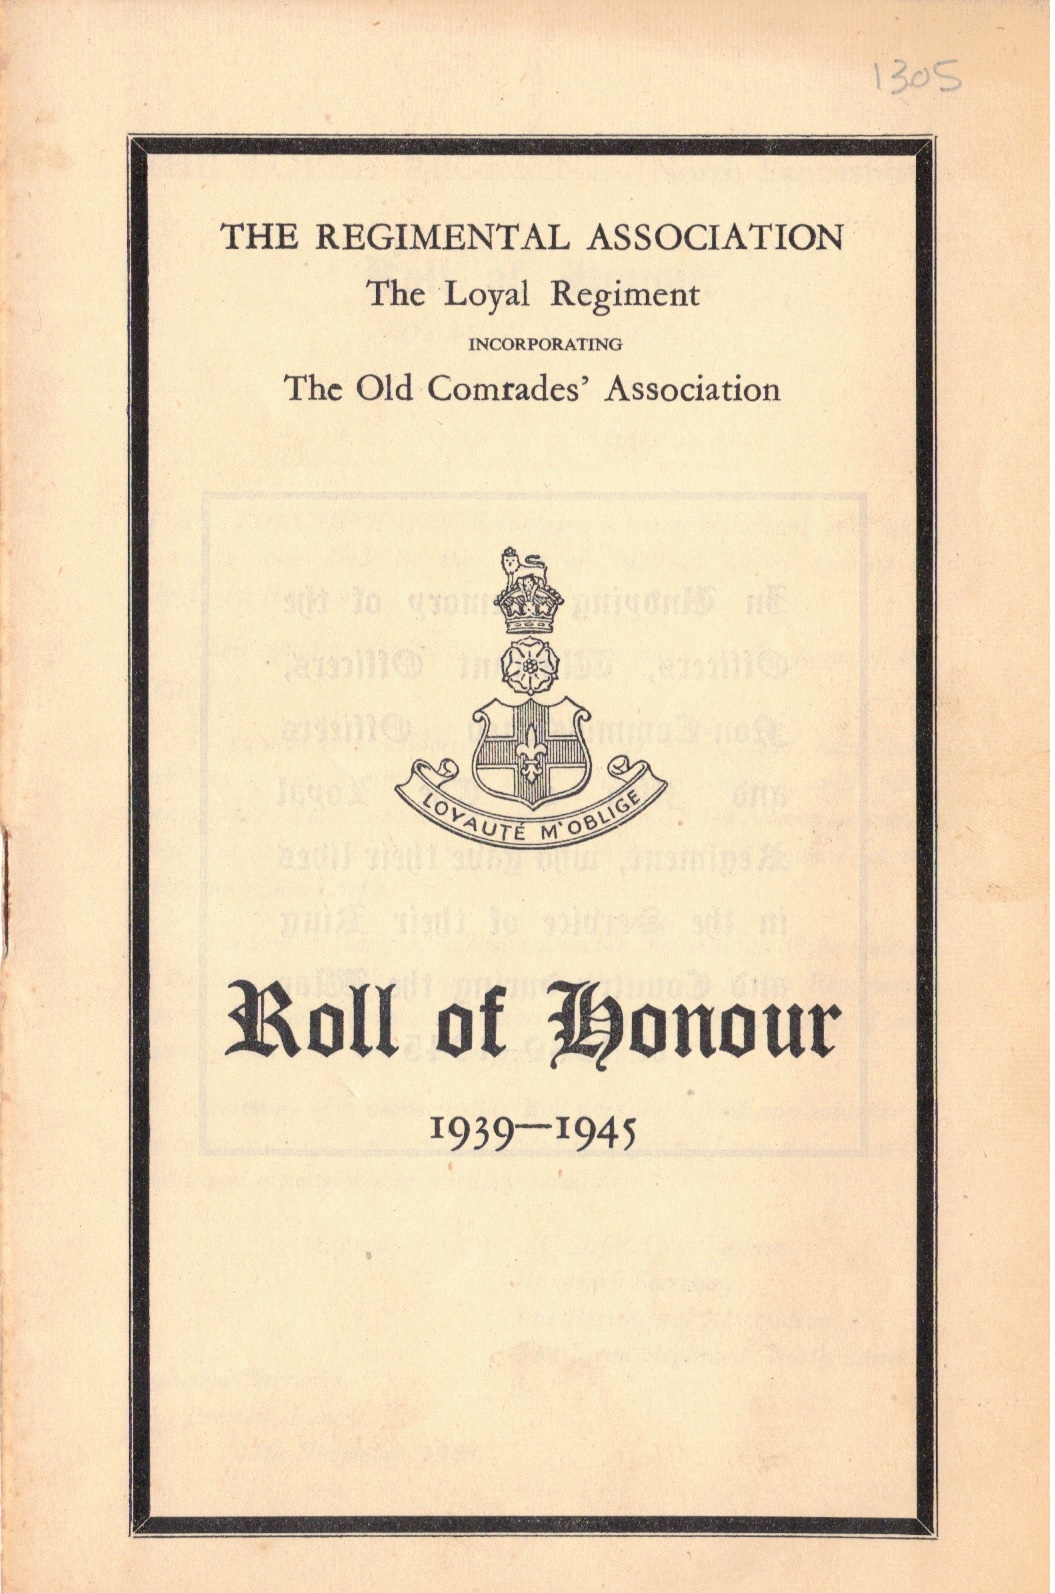 Roll of Honour, The Loyal Regiment, 1948 (collection P. Reinders)